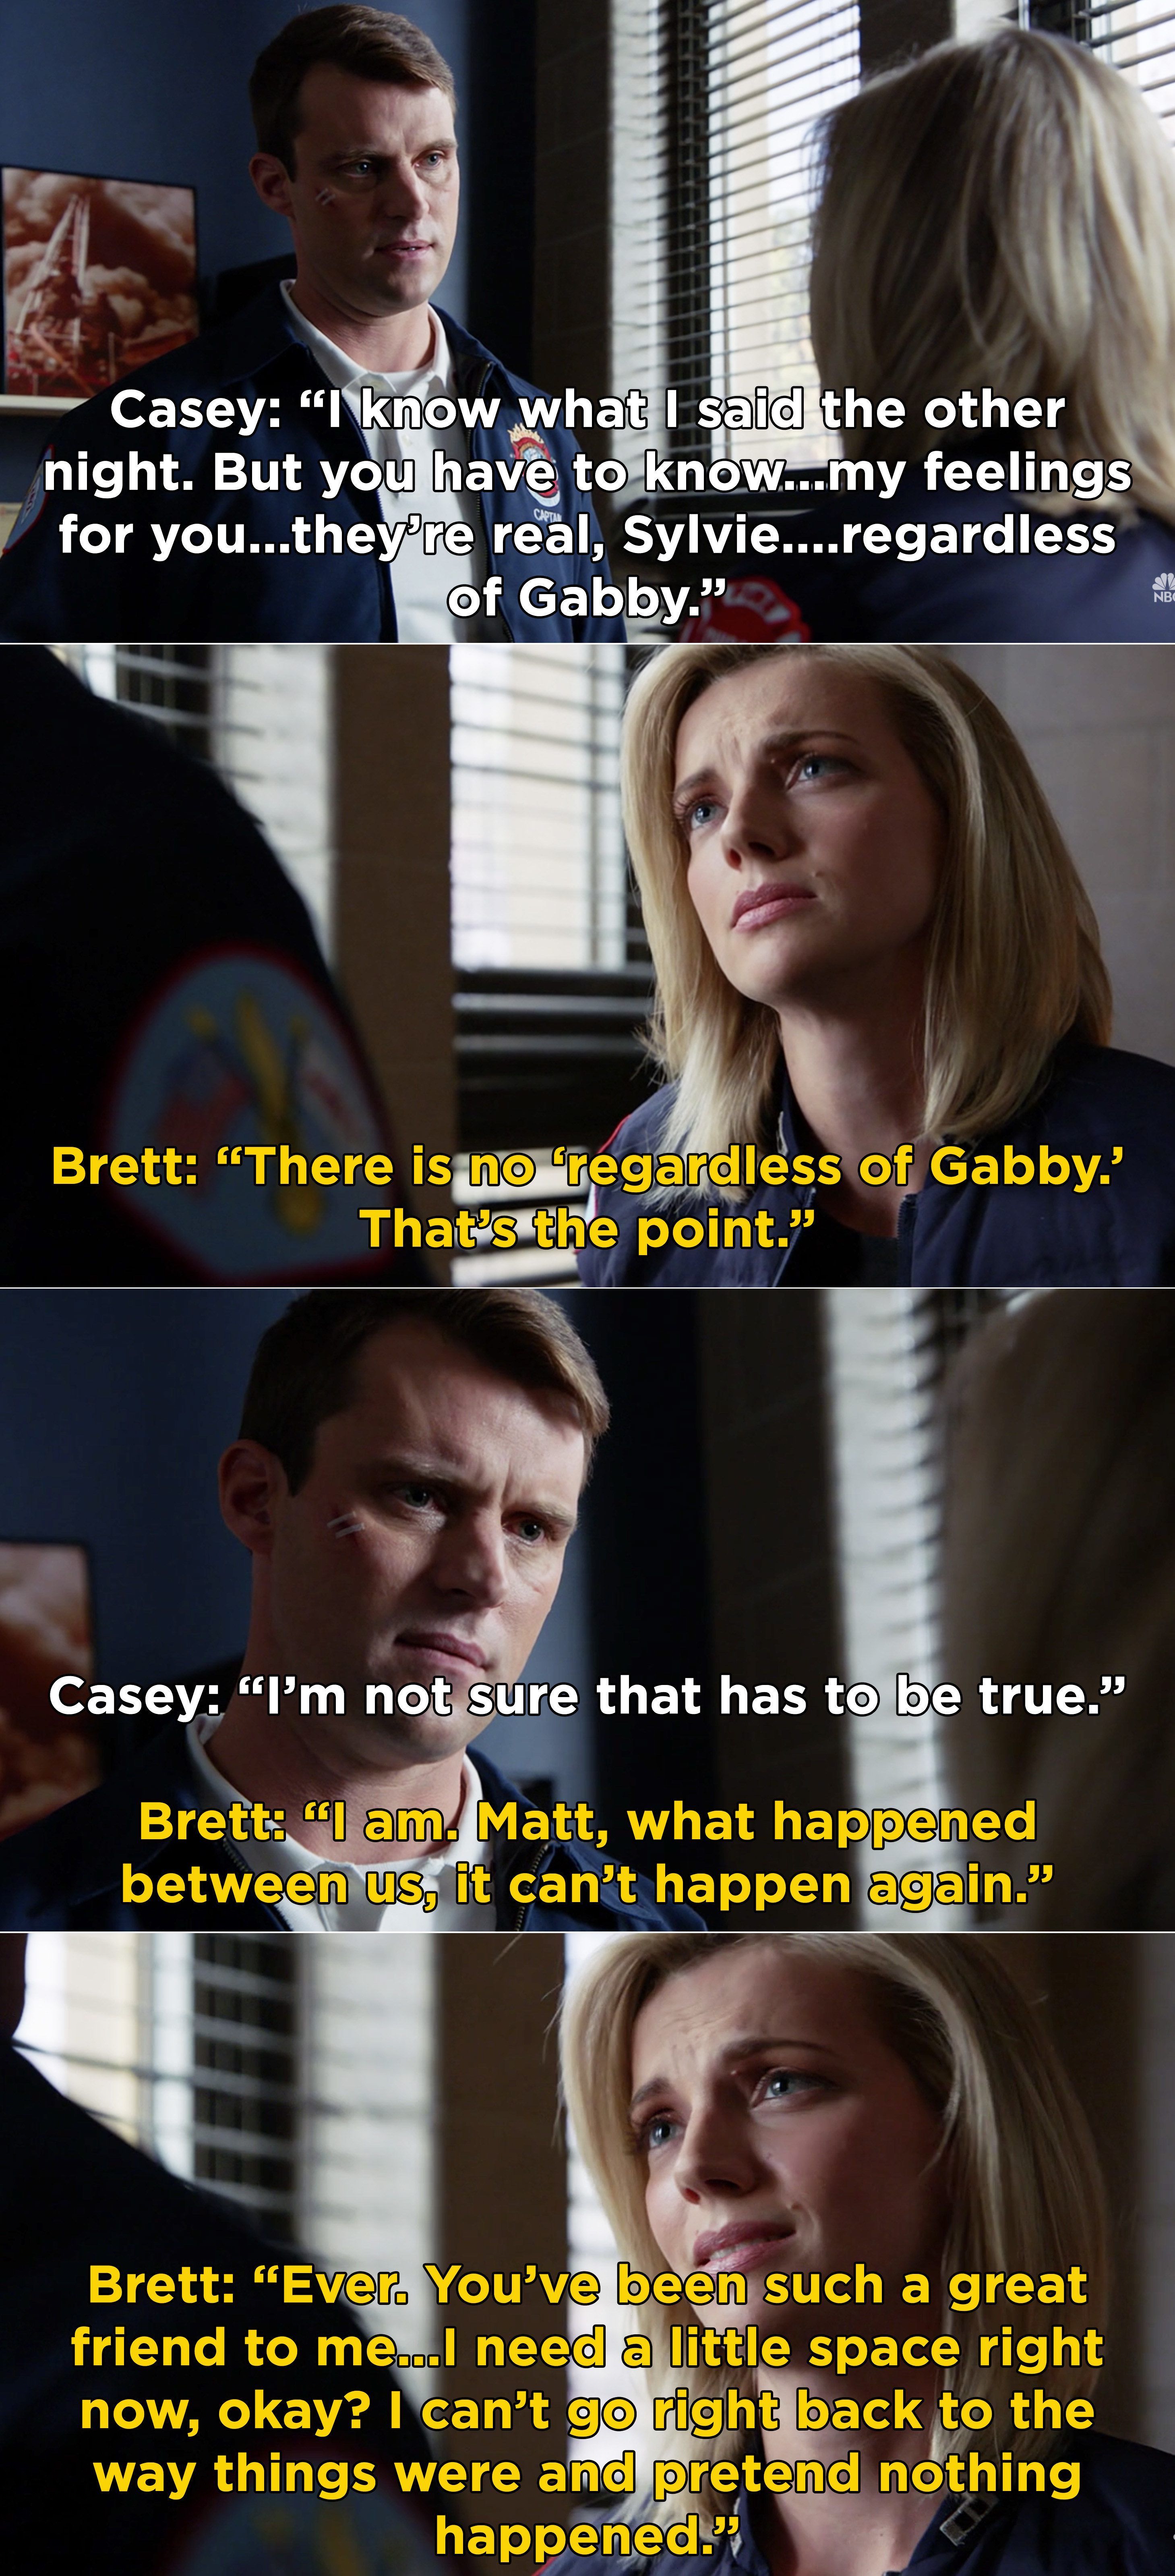 Casey telling Brett that he wants to be with her, but Brett saying she needs to take some time because Gabby will always be in the middle of their relationship